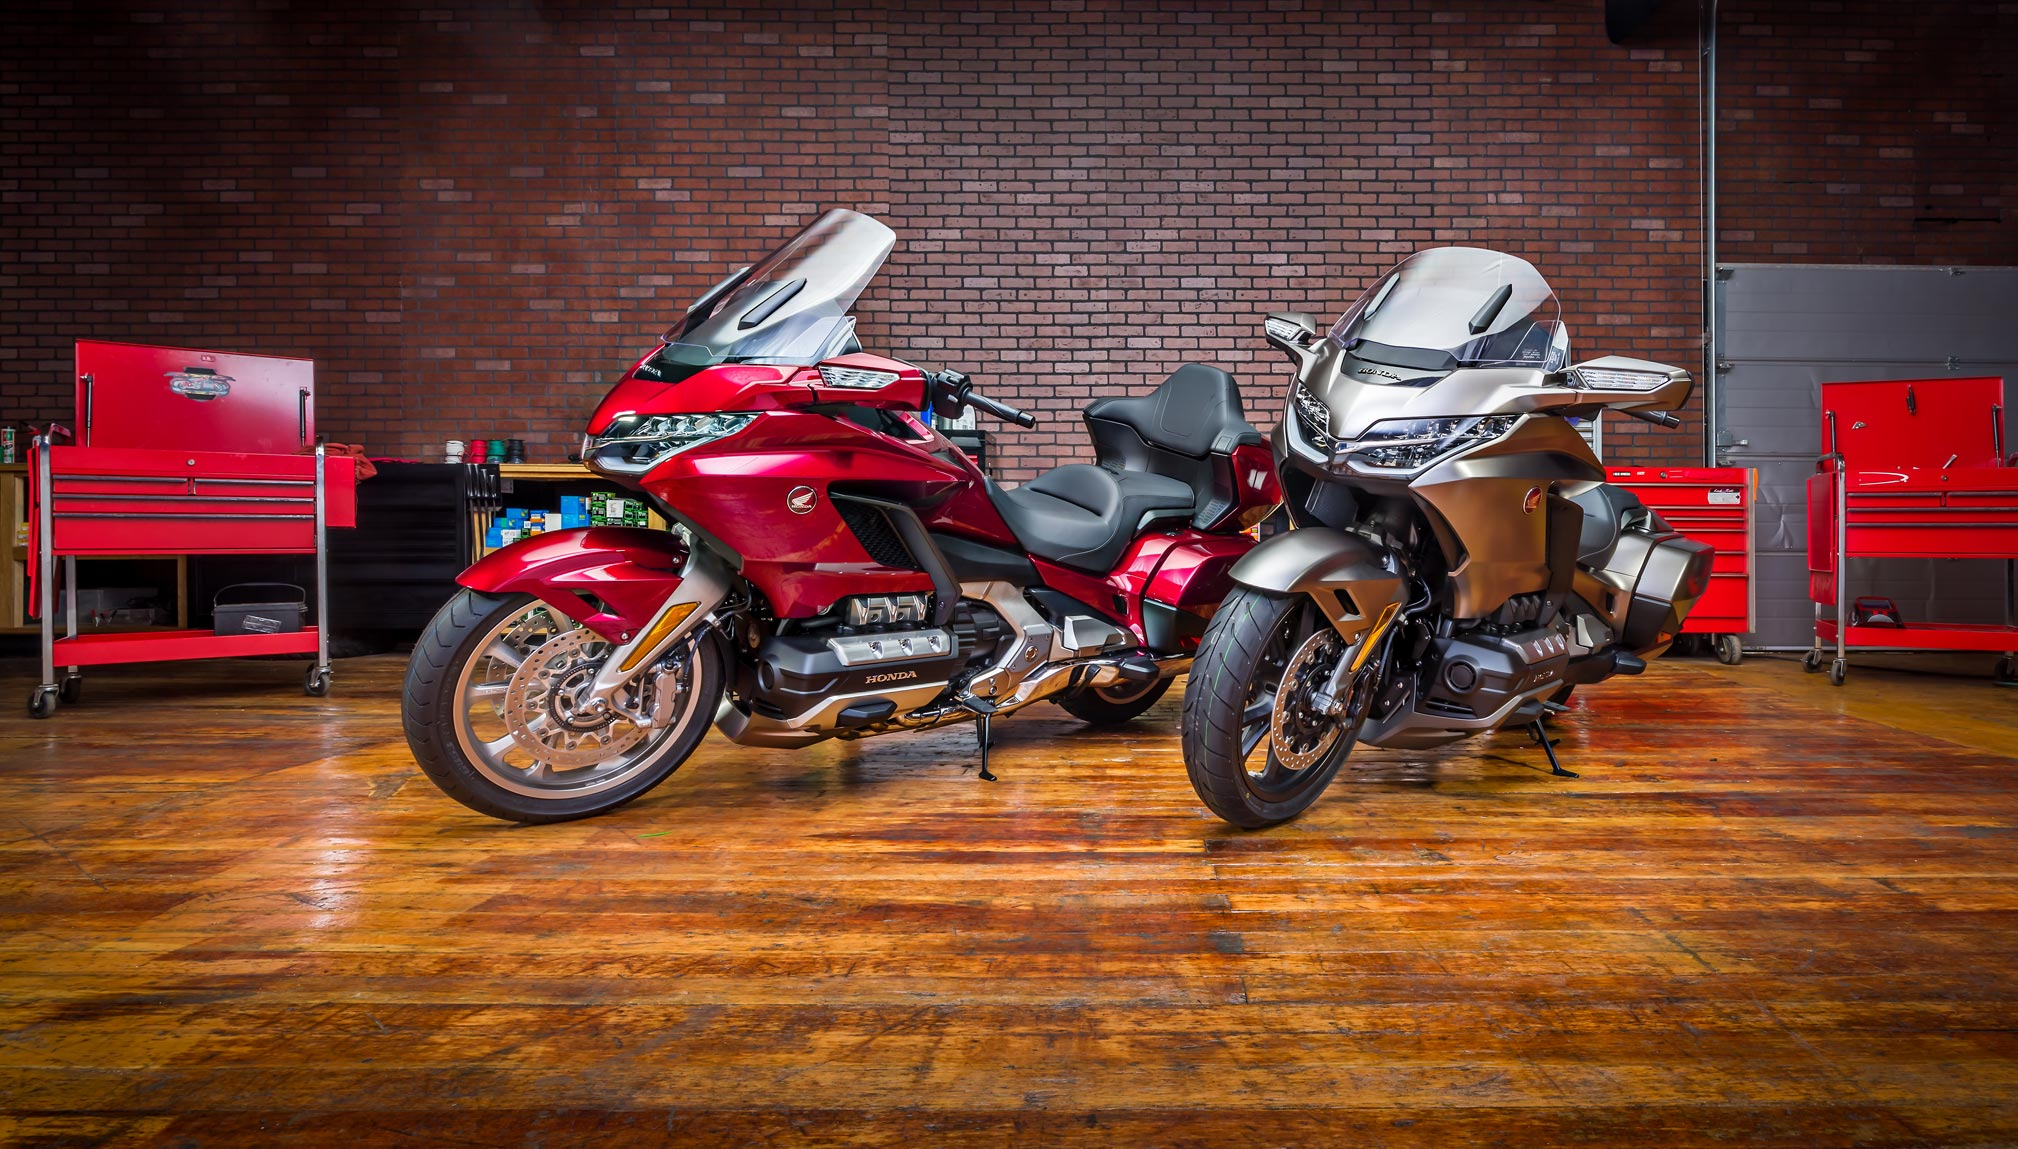 2018-Honda-Gold-Wing-Tour-Airbag-Automatic-DCT1